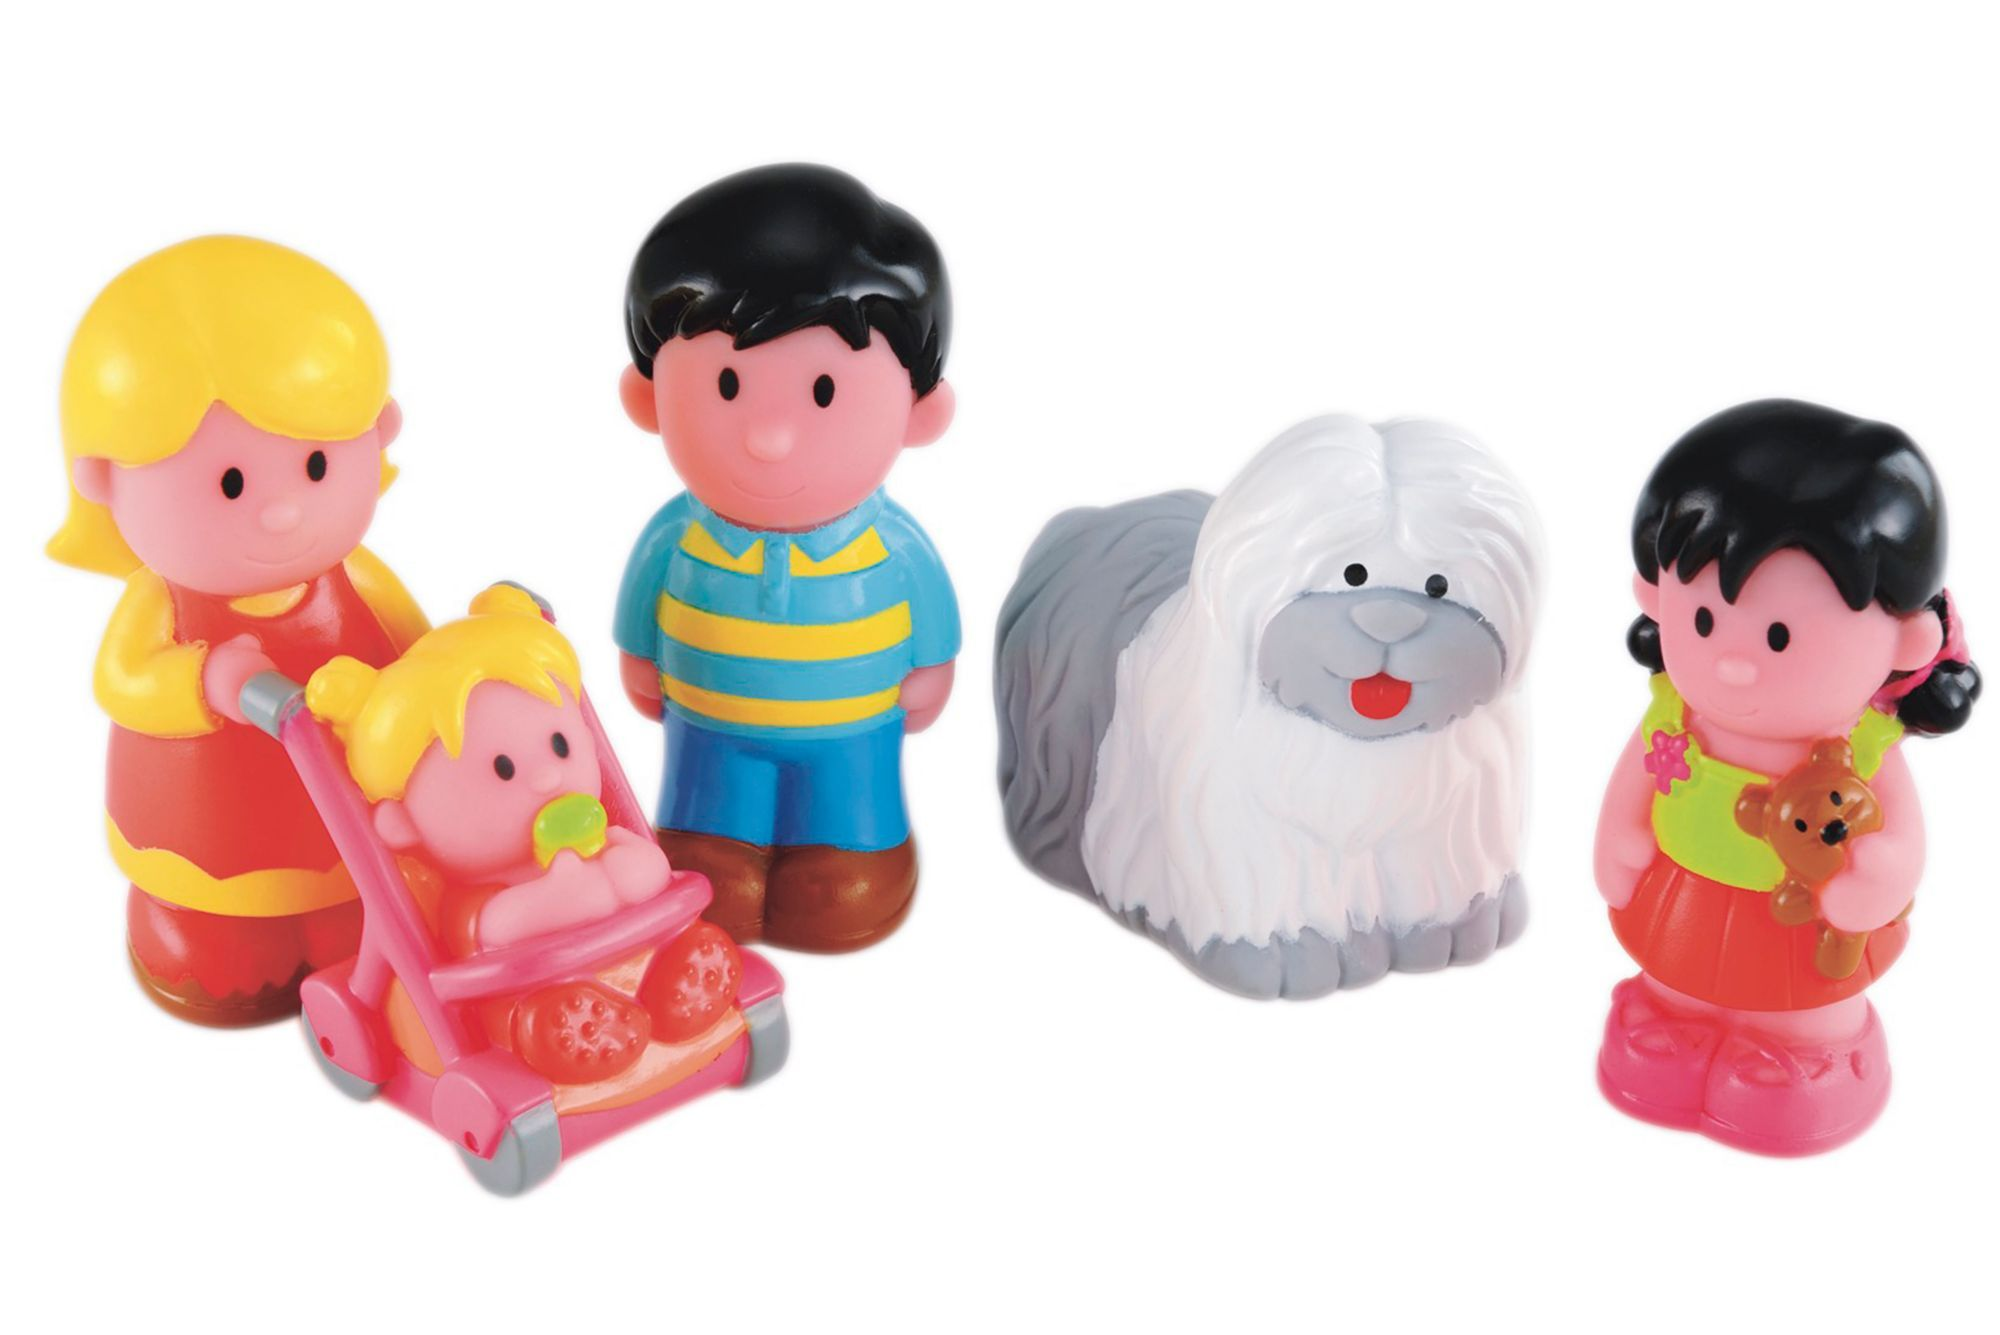 Toys images for boys  Happyland Happy Family  Happy family